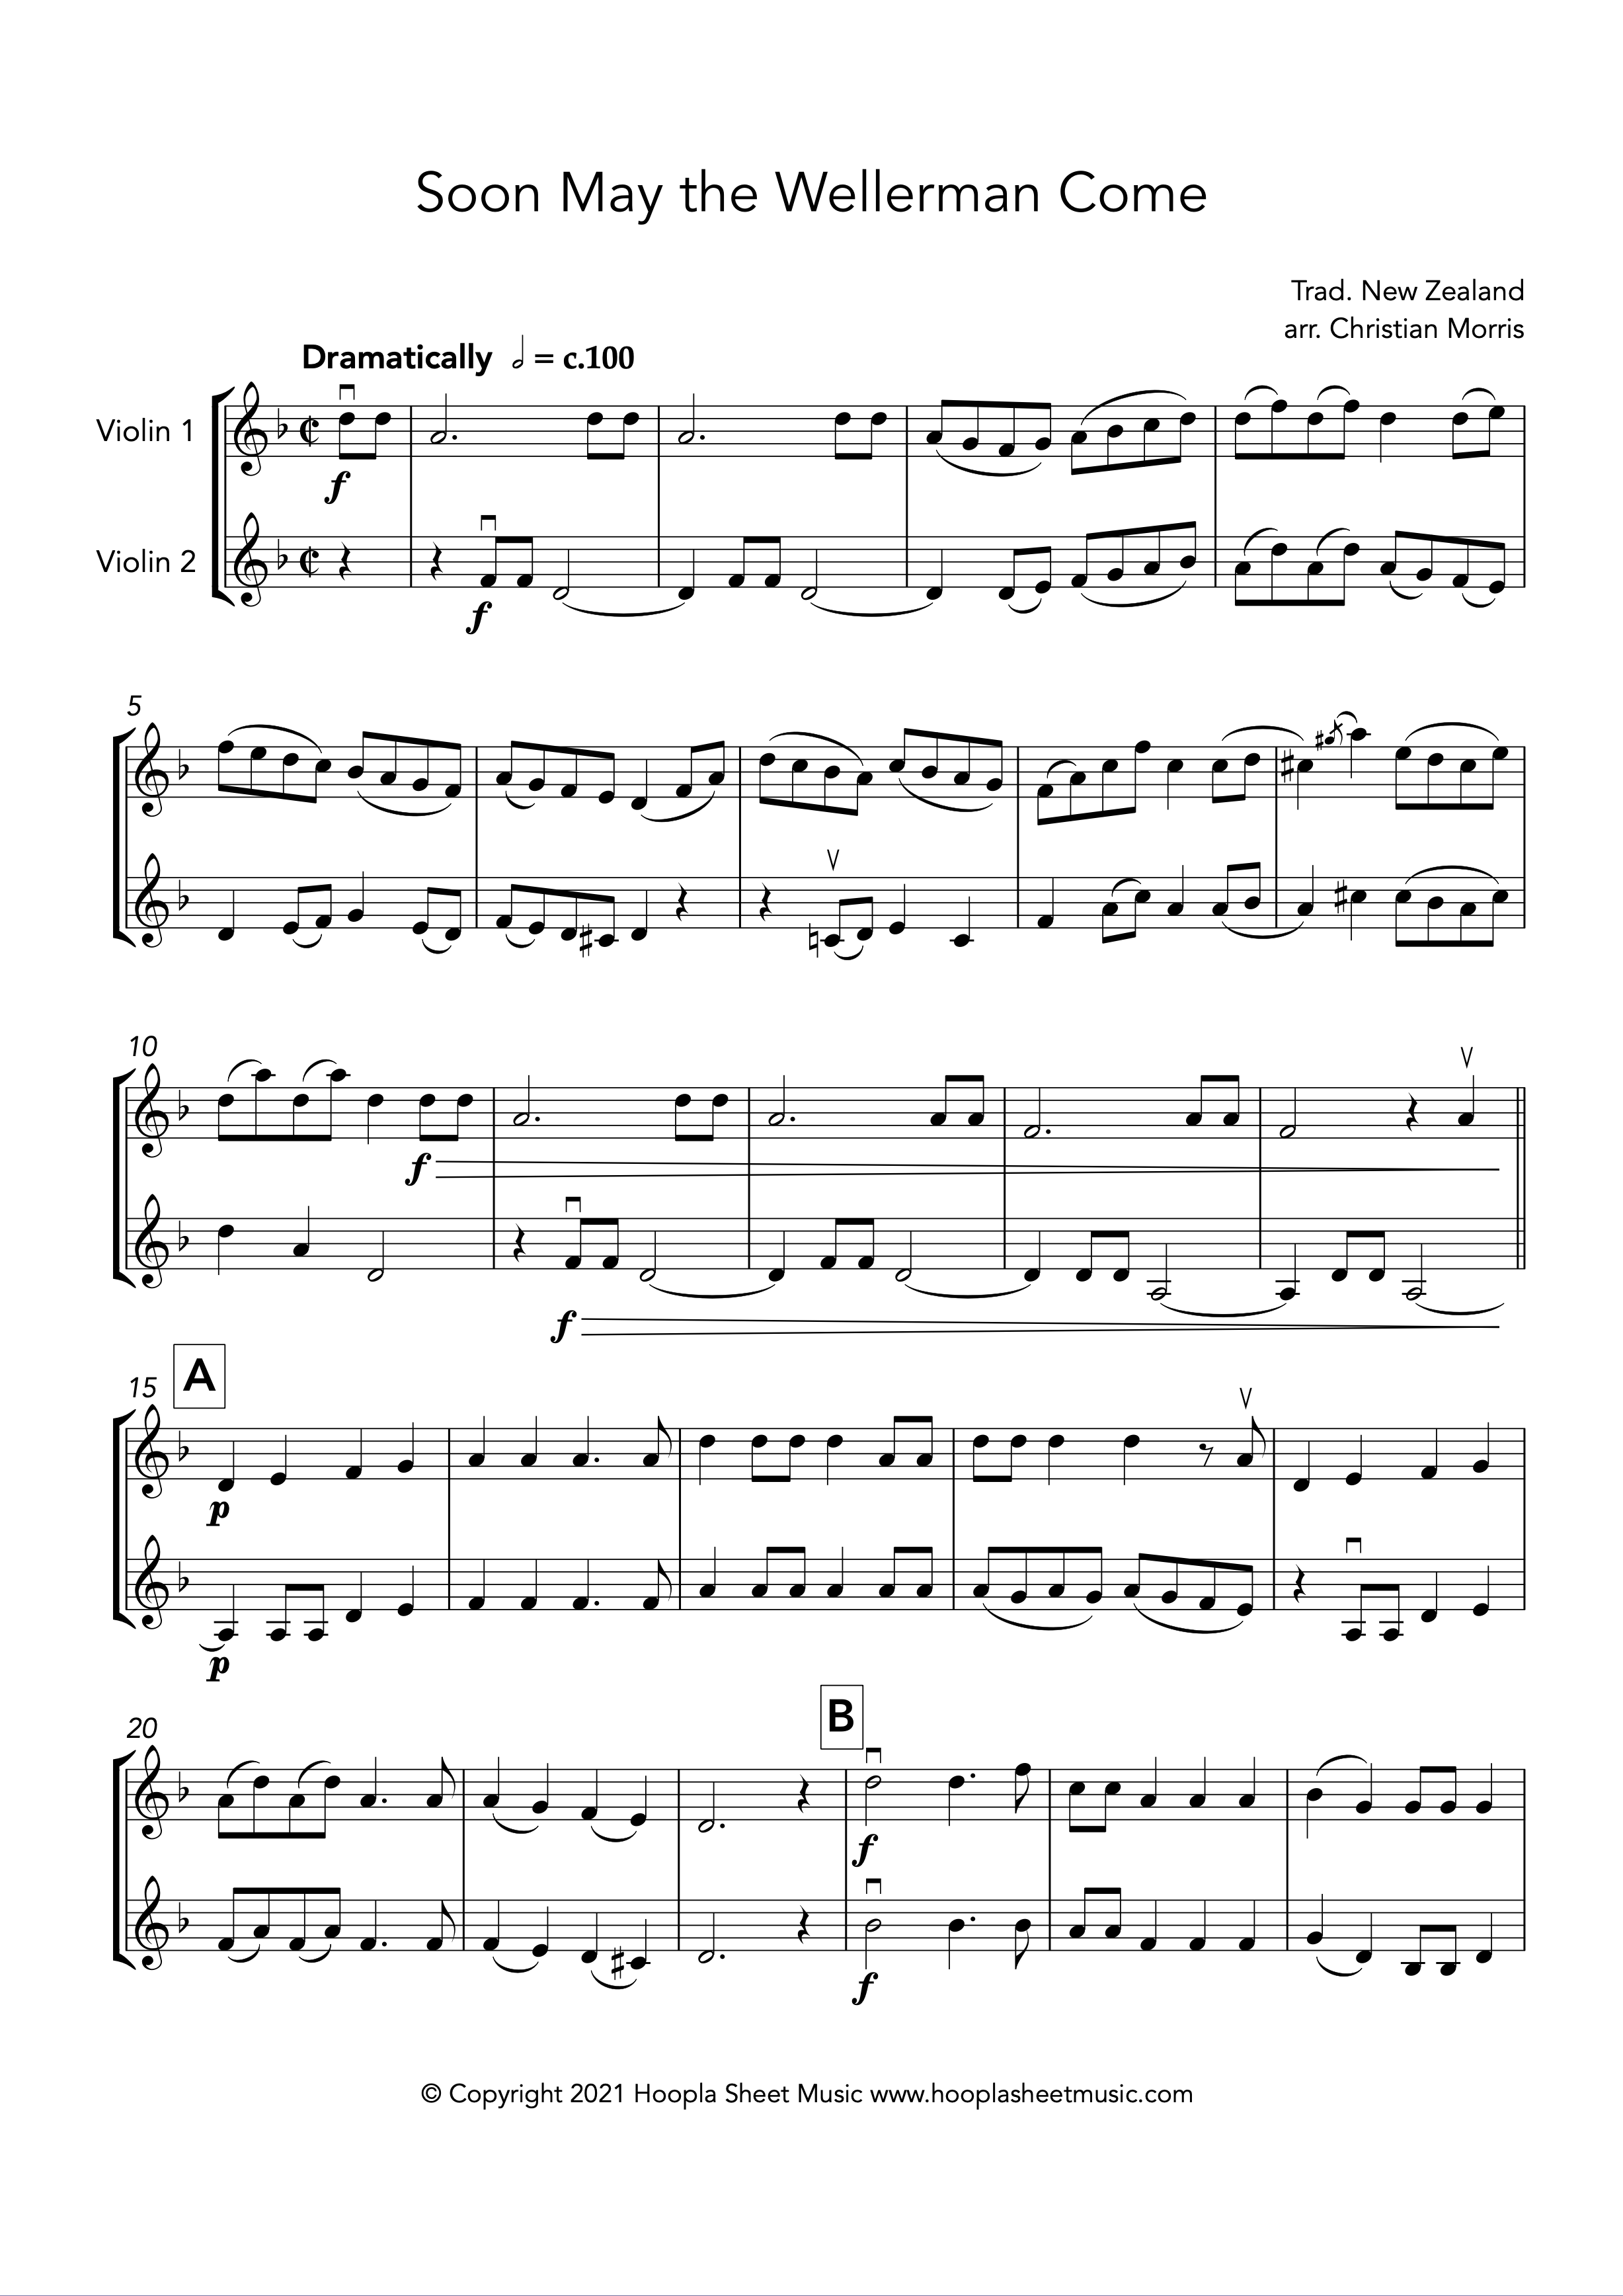 Soon May the Wellerman Come (Violin Duet)